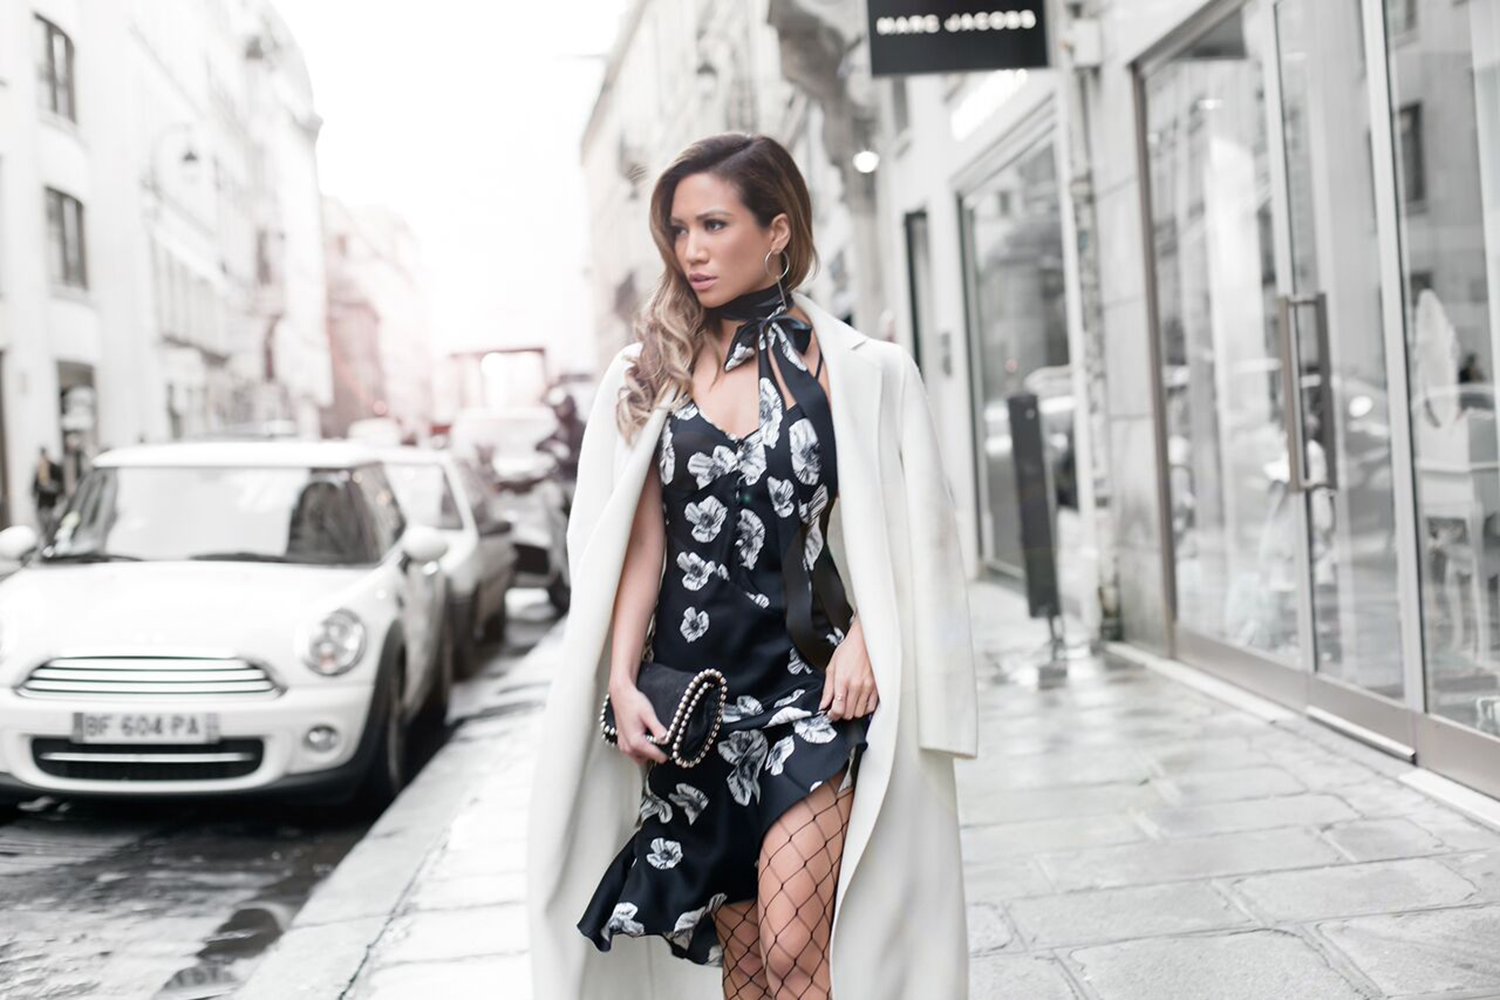 Jessi Malay wearing Galliano at Paris Fashion Week